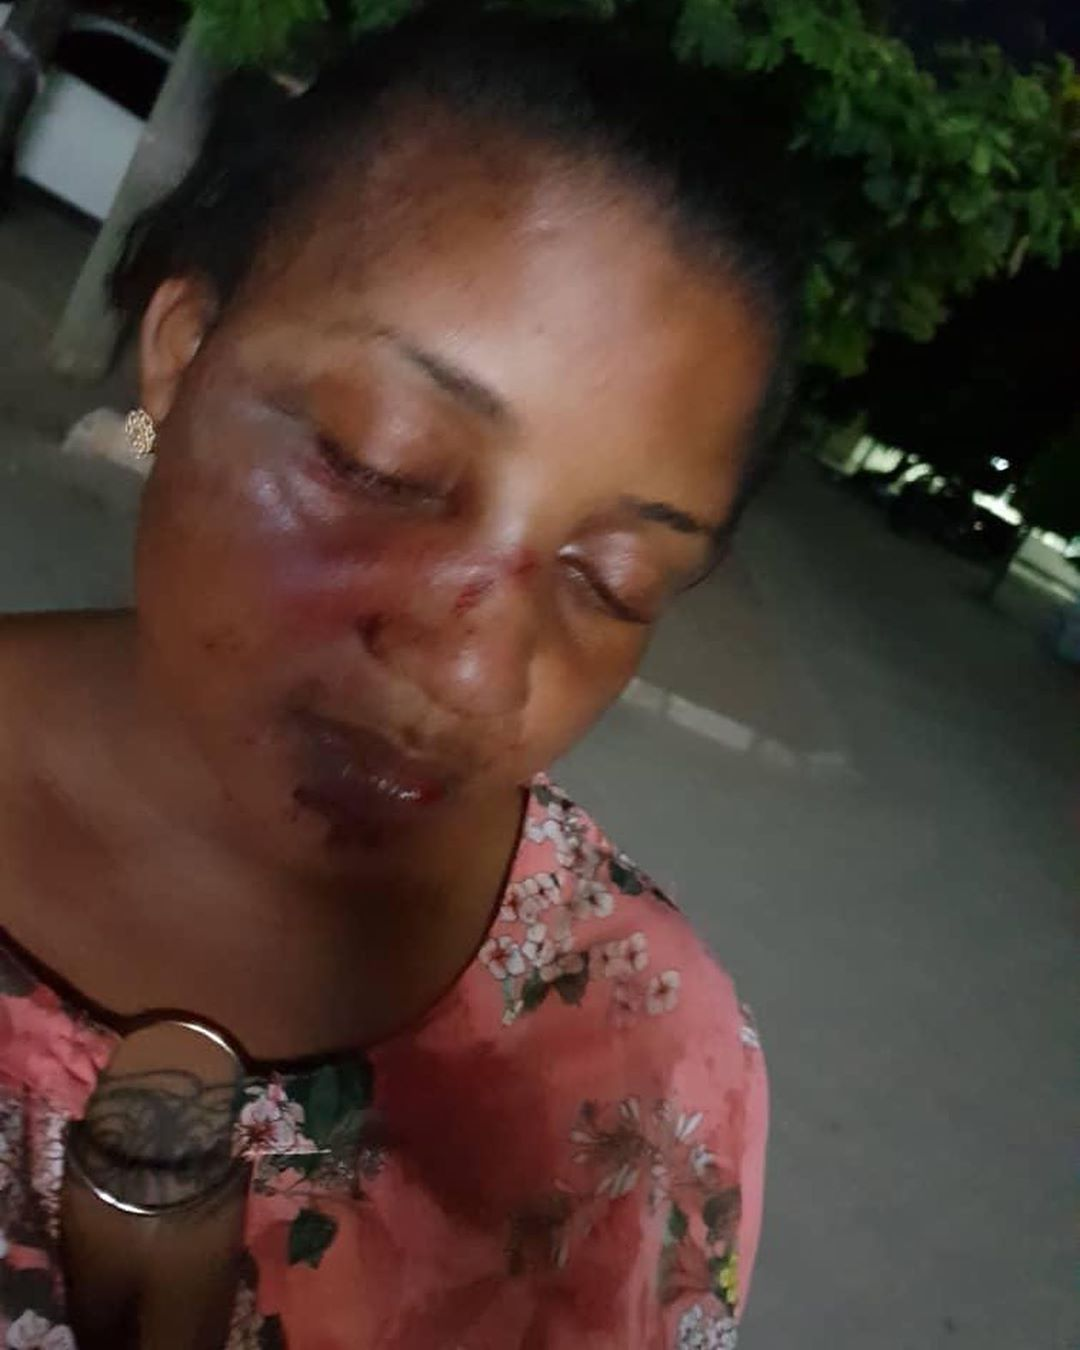 actress-zena-yusuf-with-battered-face